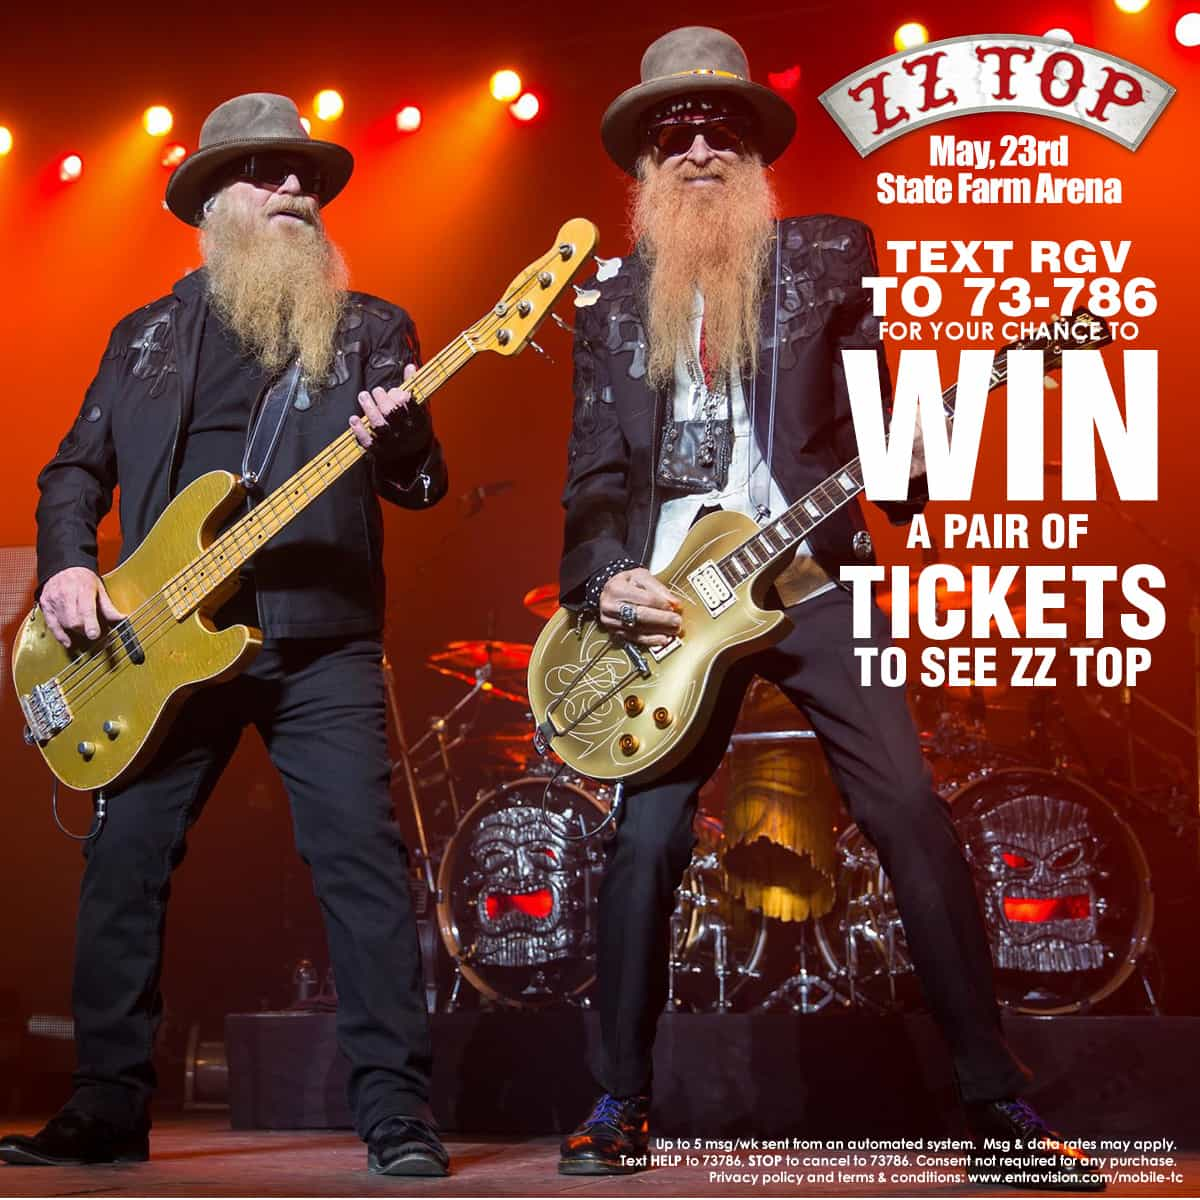 Win tickets to see ZZ Top in Concert